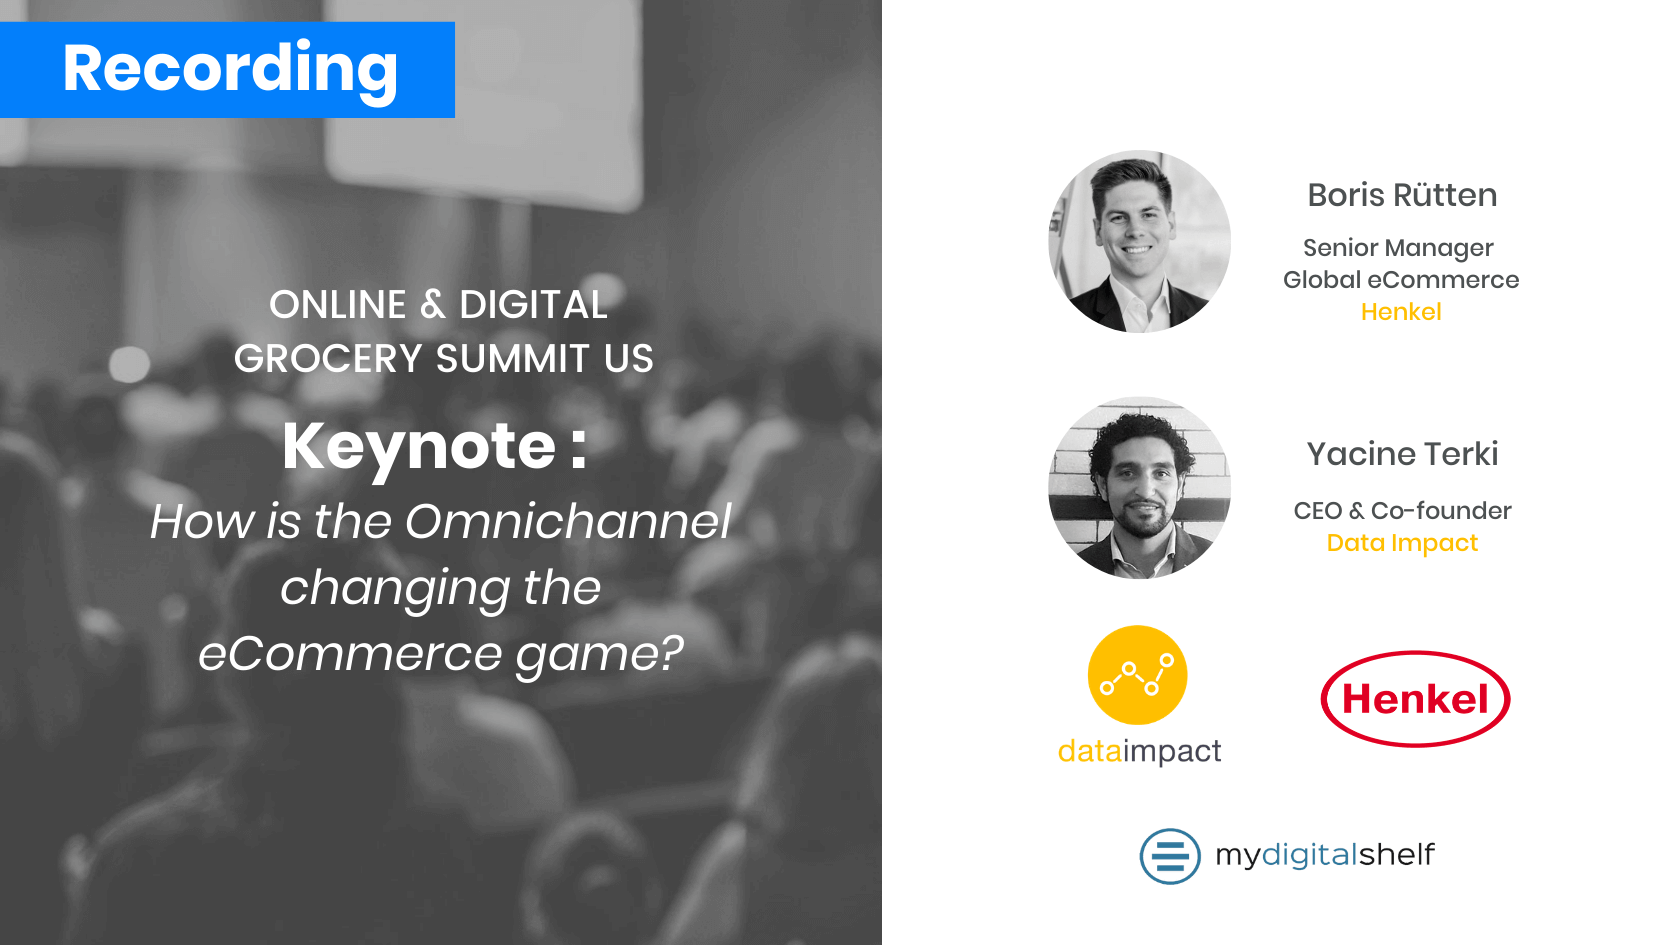 Keynote: How is the omnichannel changing the eCommerce game?